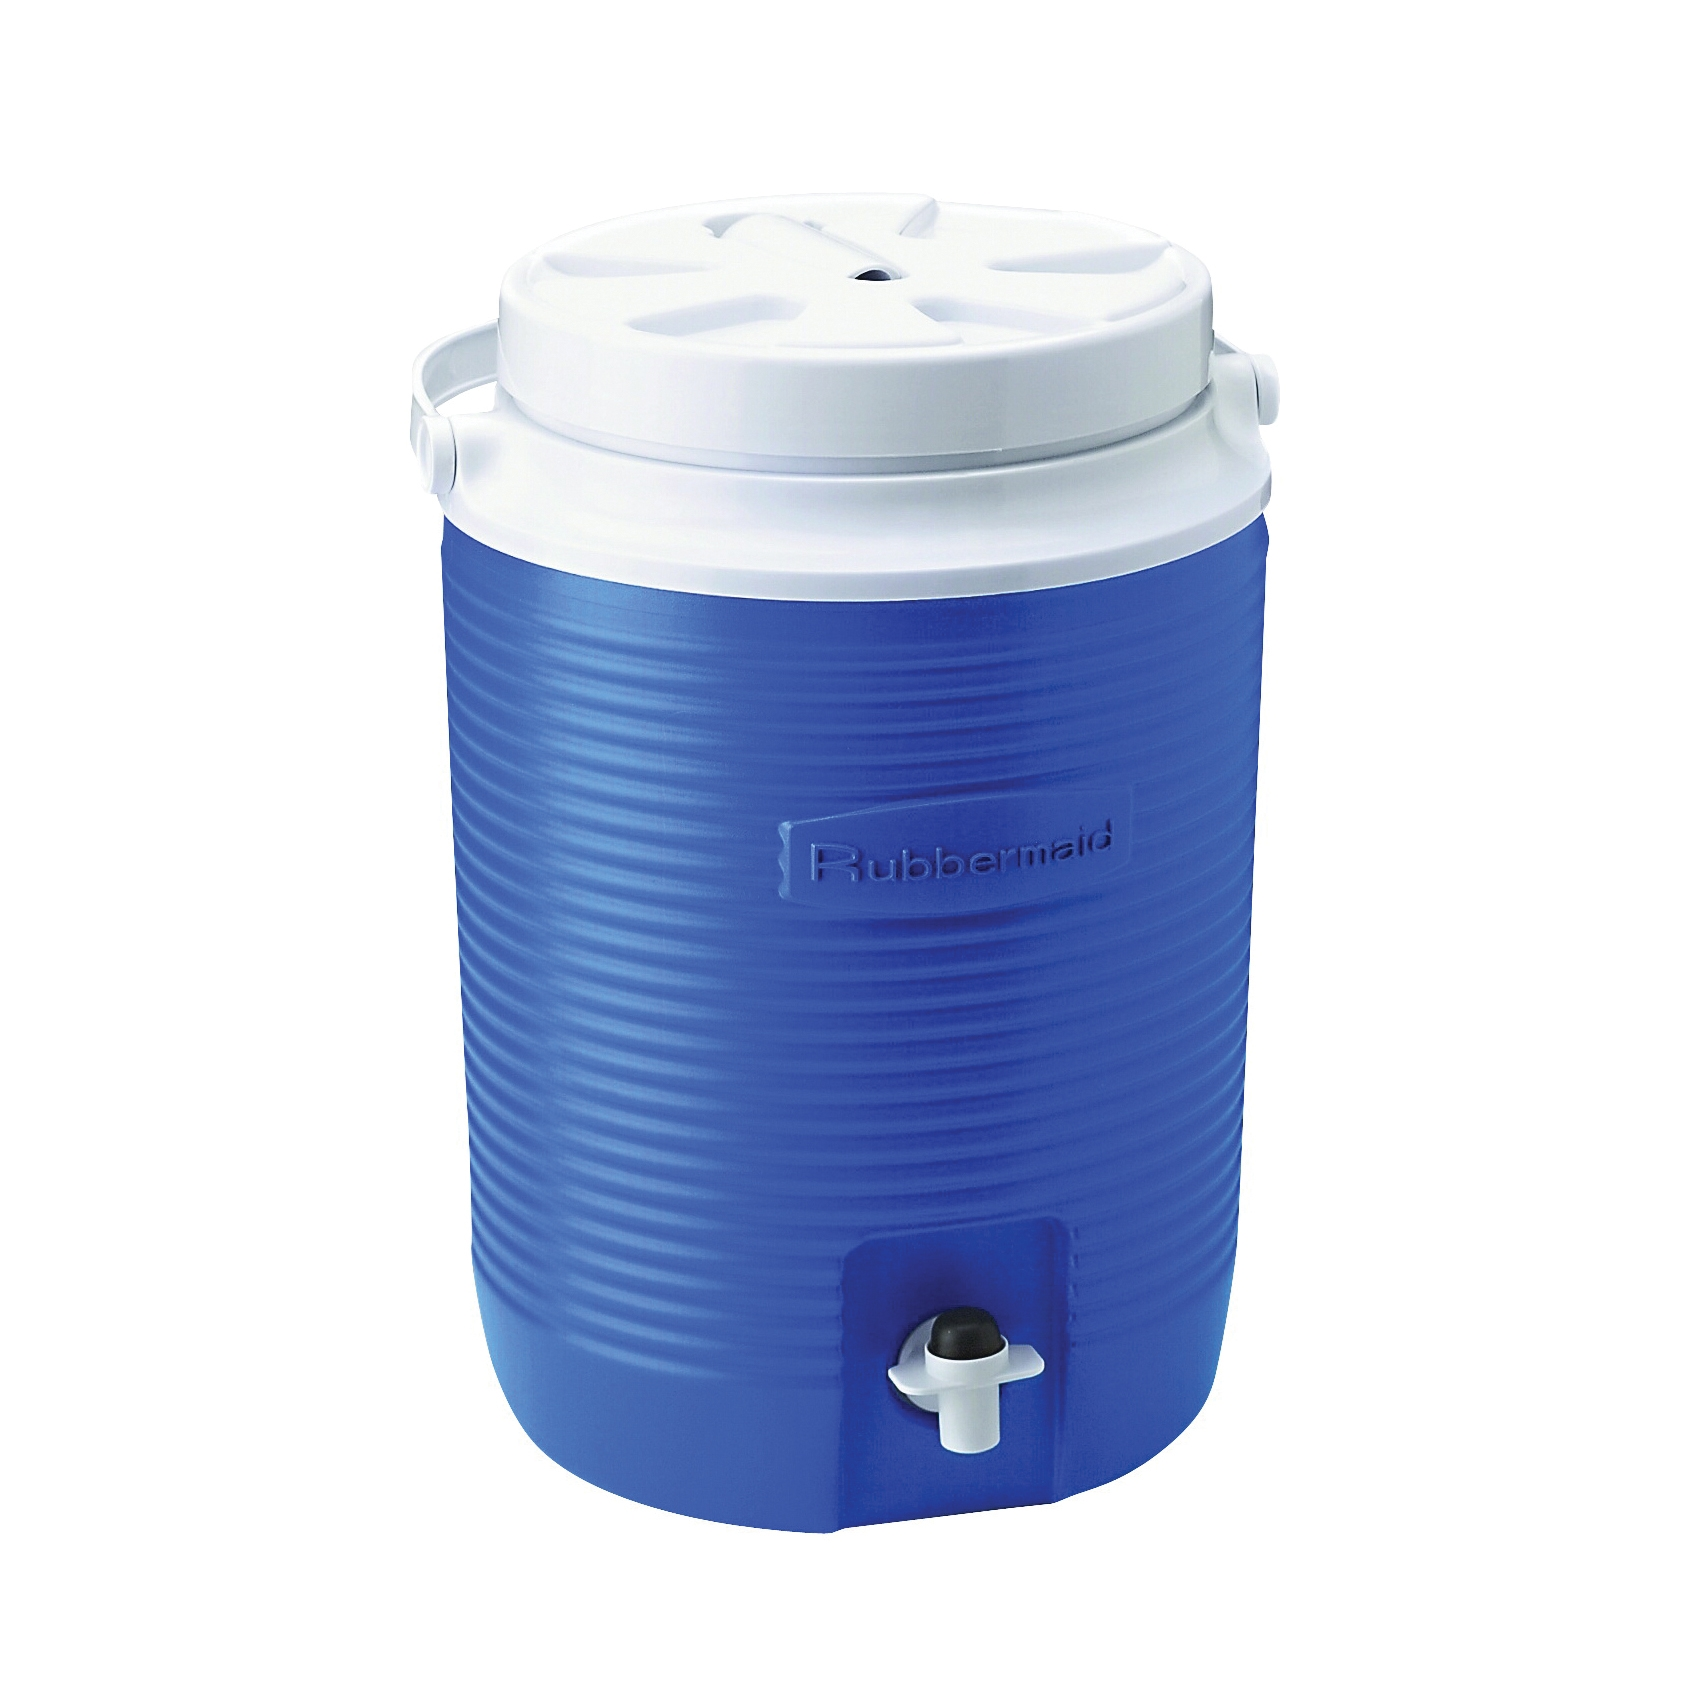 Picture of Rubbermaid 1530-04-MODBL Water Cooler Jug, 2 gal Capacity, Polyethylene, Modern Blue